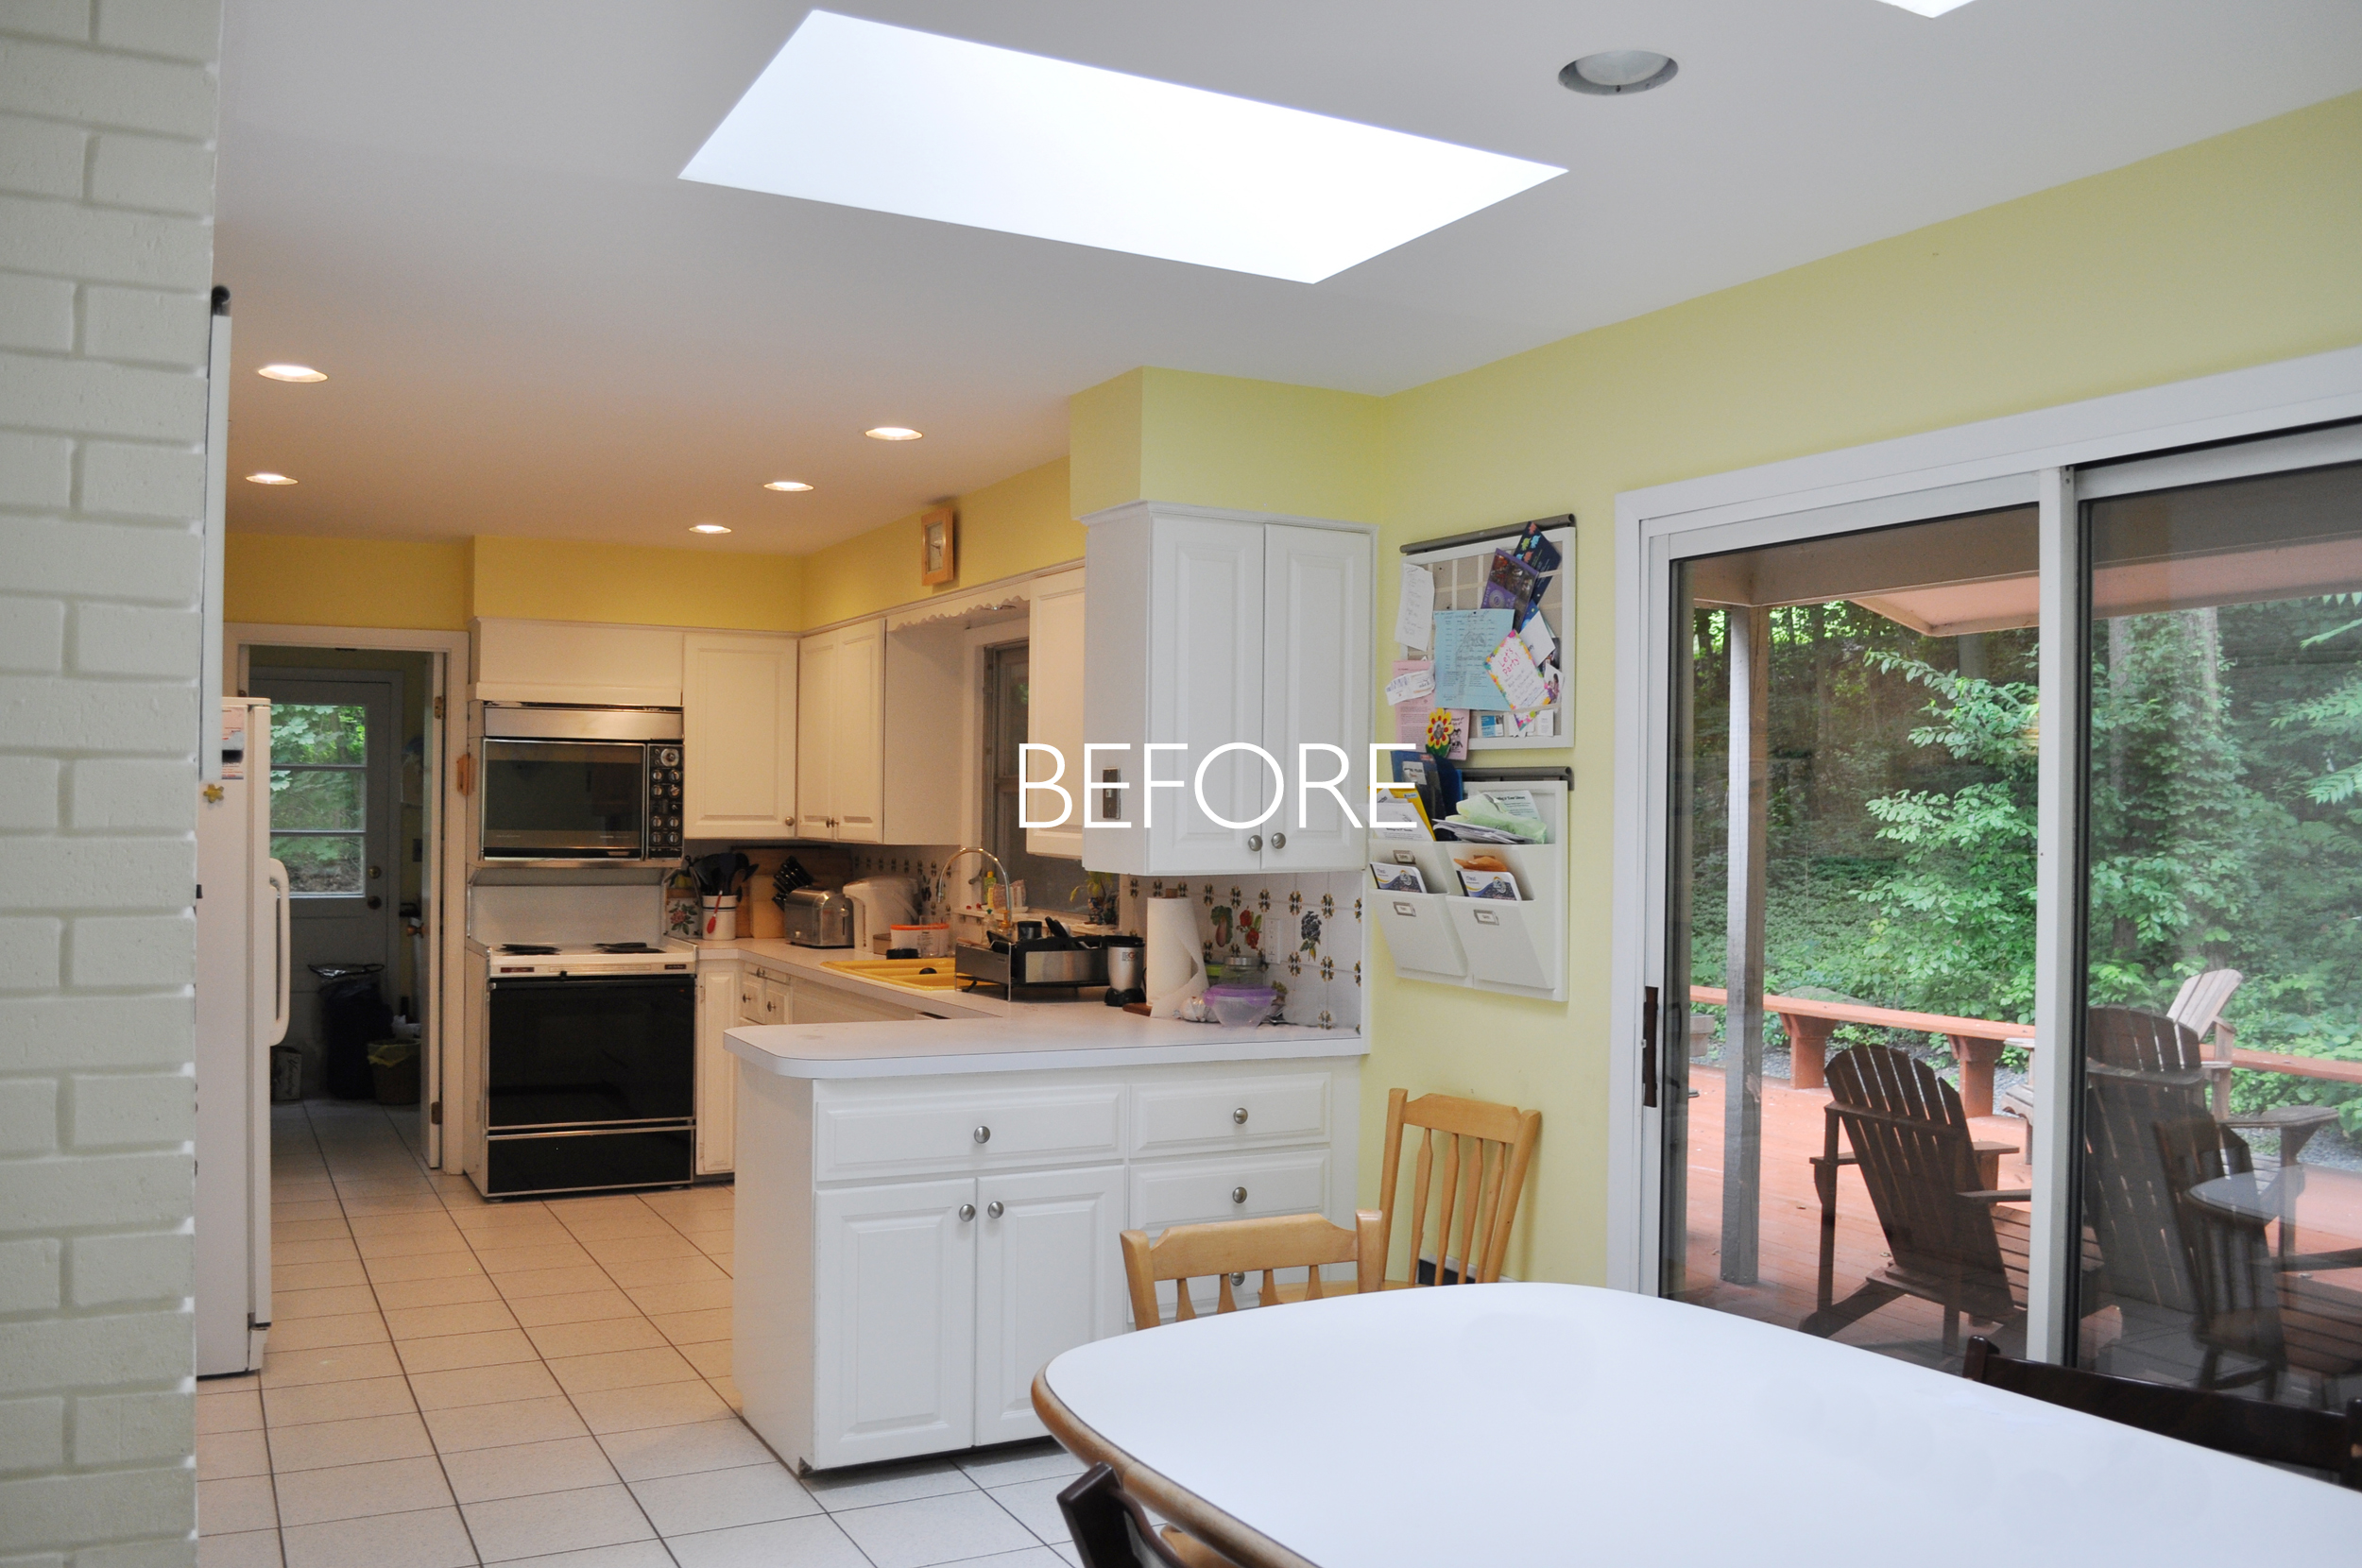 BEFORE FROM HALL TO KITCHEN VIEW for WEB Horizontal_Labeled.jpg